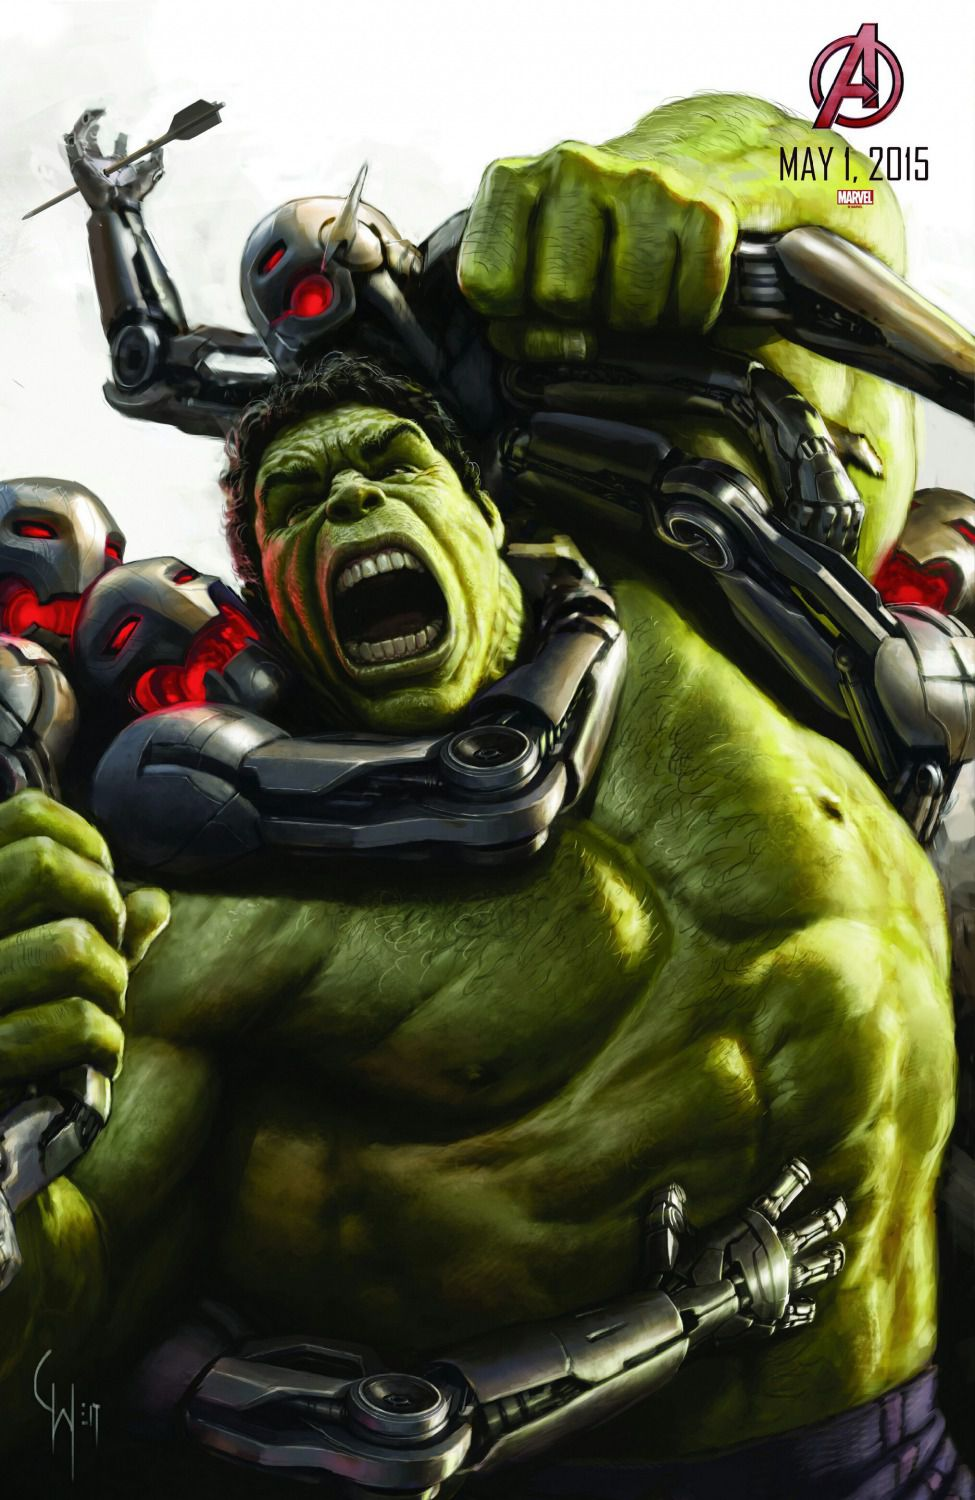 Film - Avengers 2 - Age of Ultron - set poster for multiscreen computer - save all images